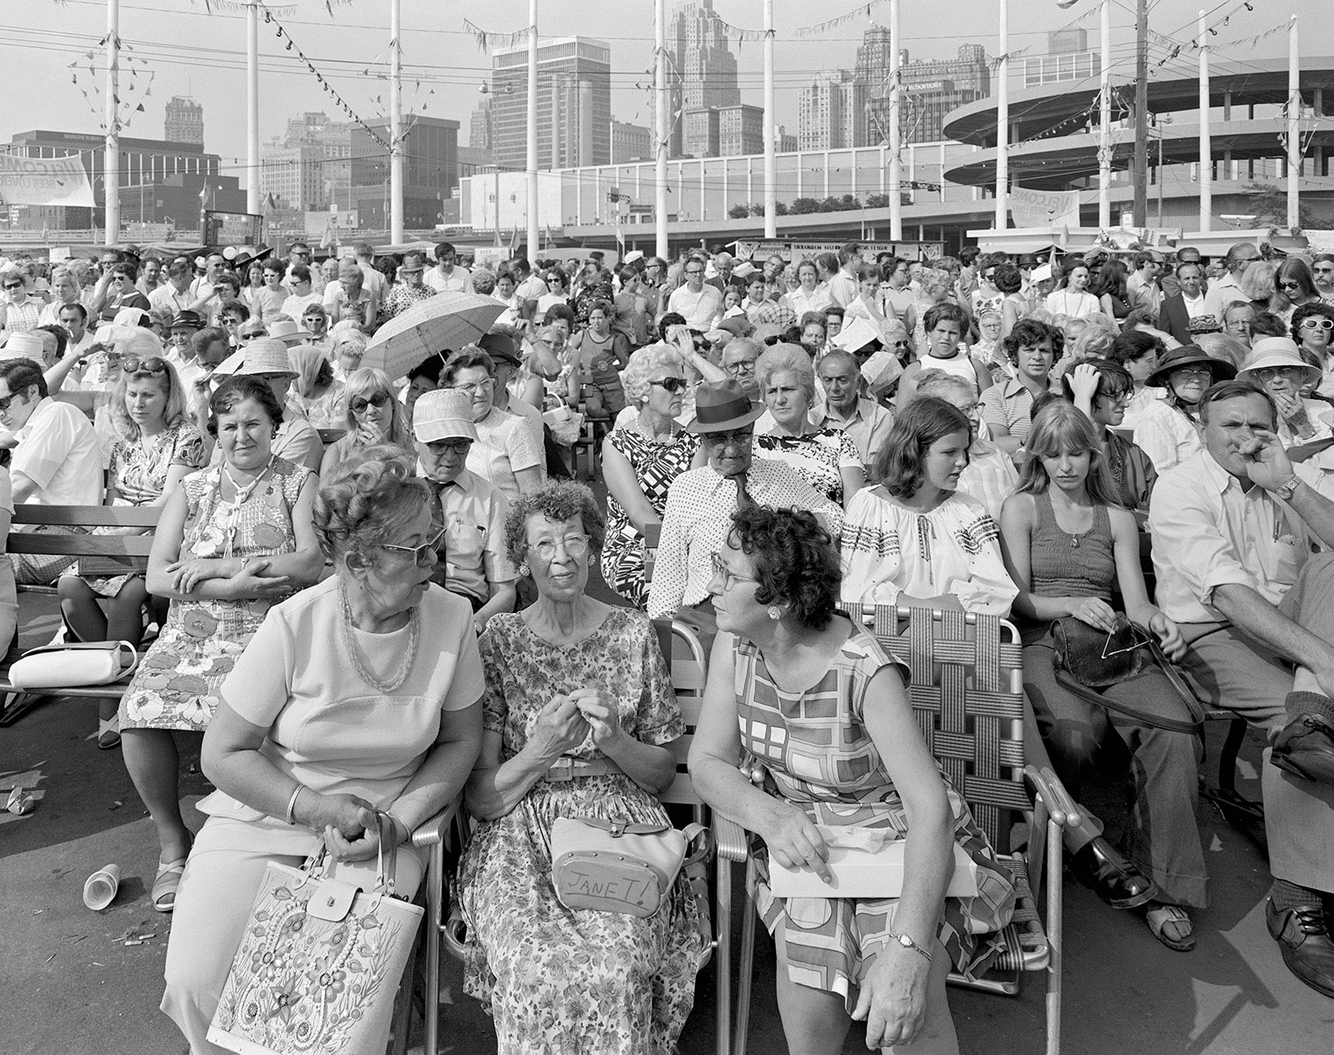 A Group of Spectators, Detroit 1973